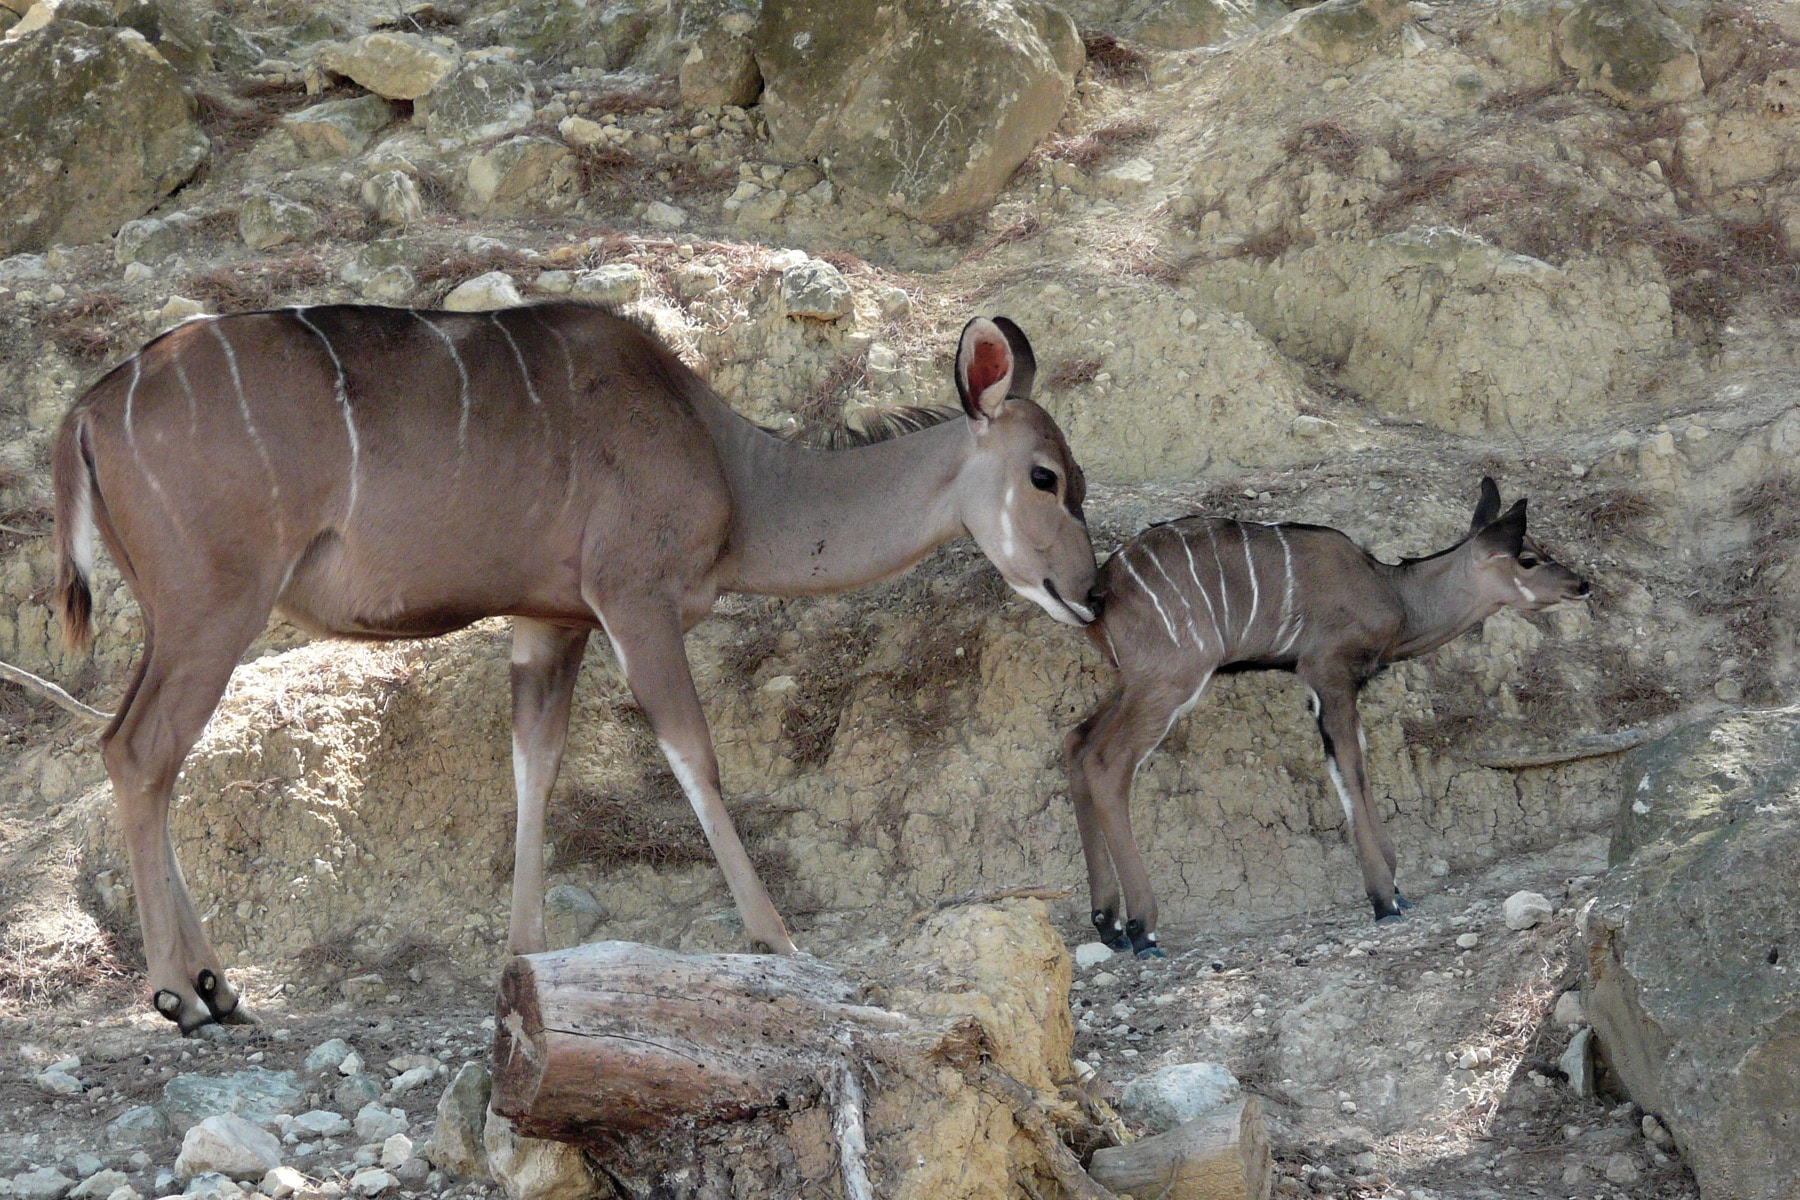 Greater kudu born at the Réserve Africaine de Sigean